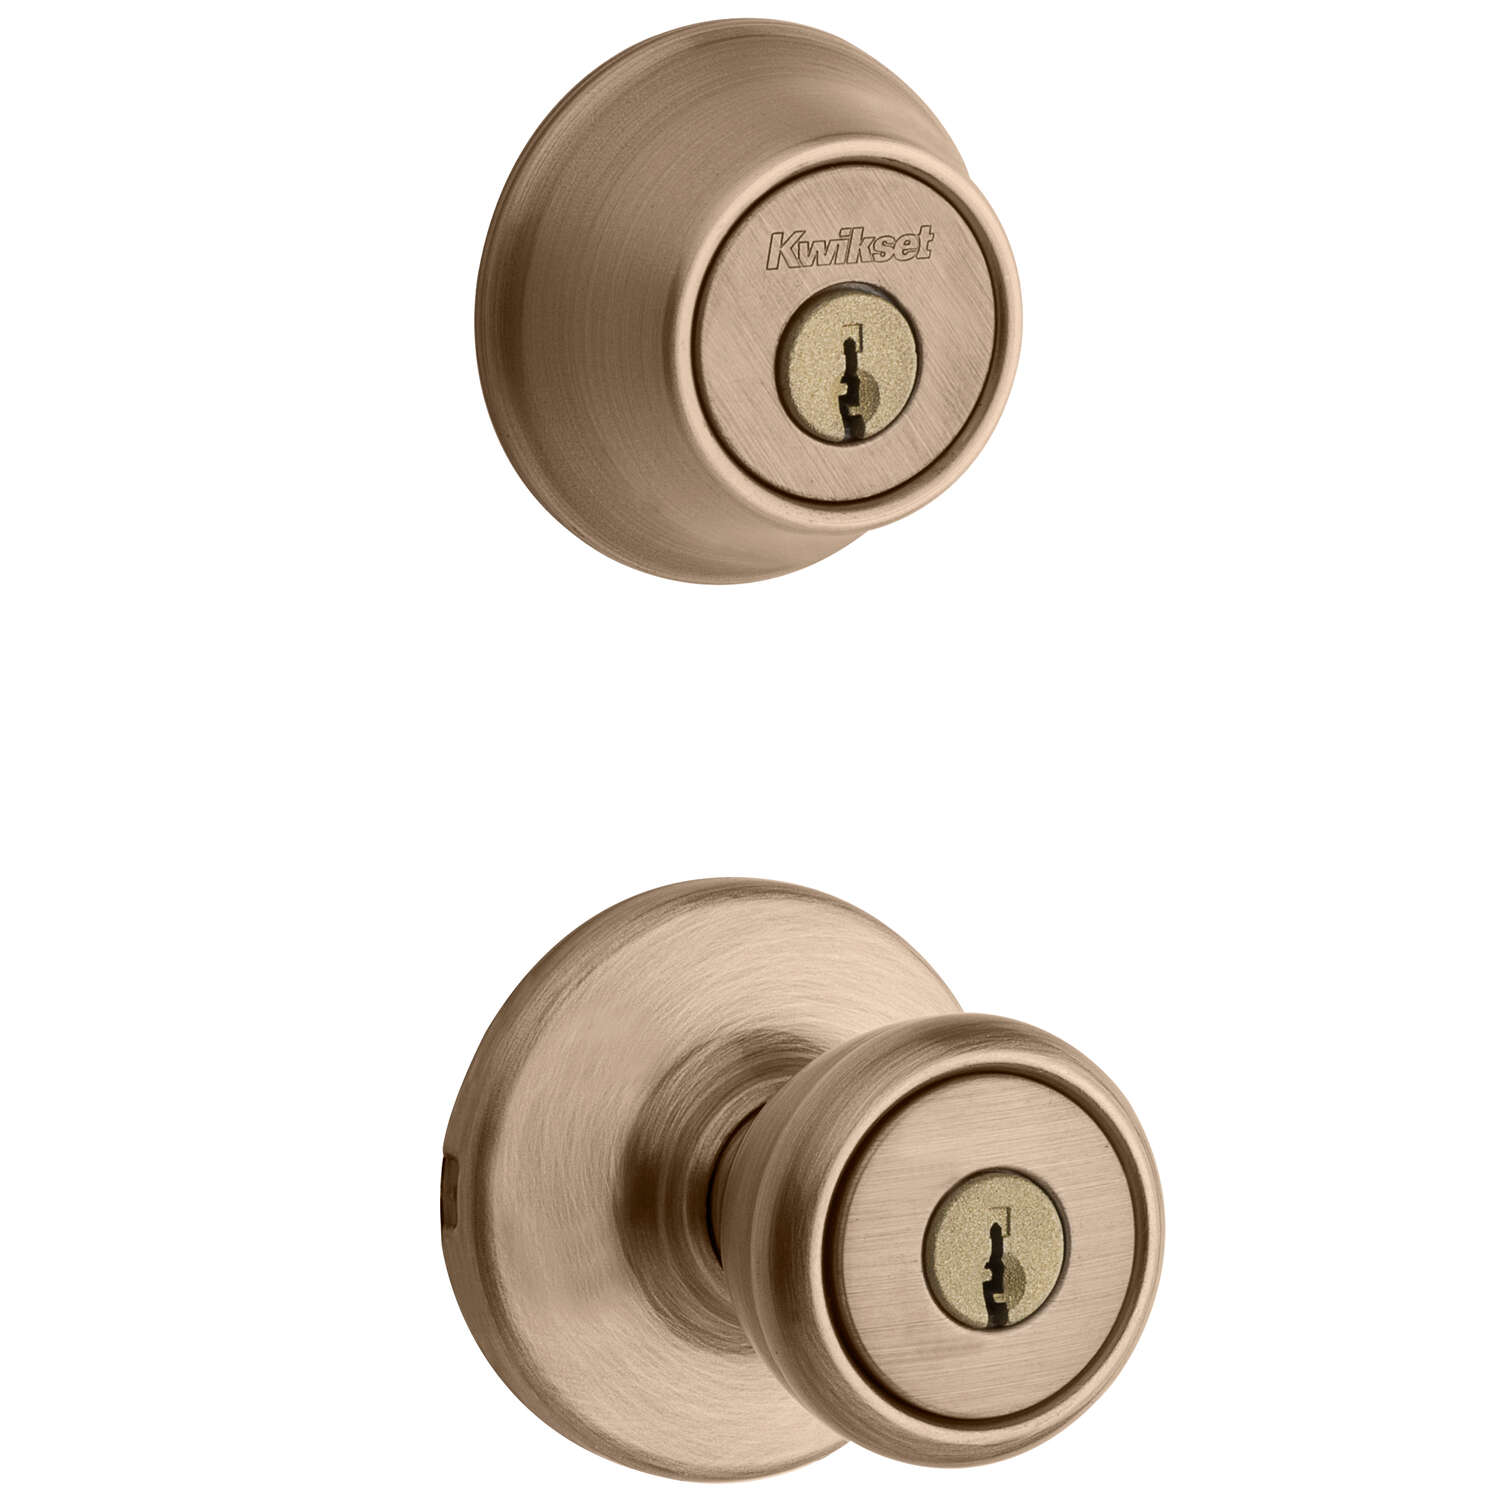 Kwikset  Tylo  Antique Brass  Entry Lock and Double Cylinder Deadbolt  ANSI/BHMA Grade 3  1-3/4 in.